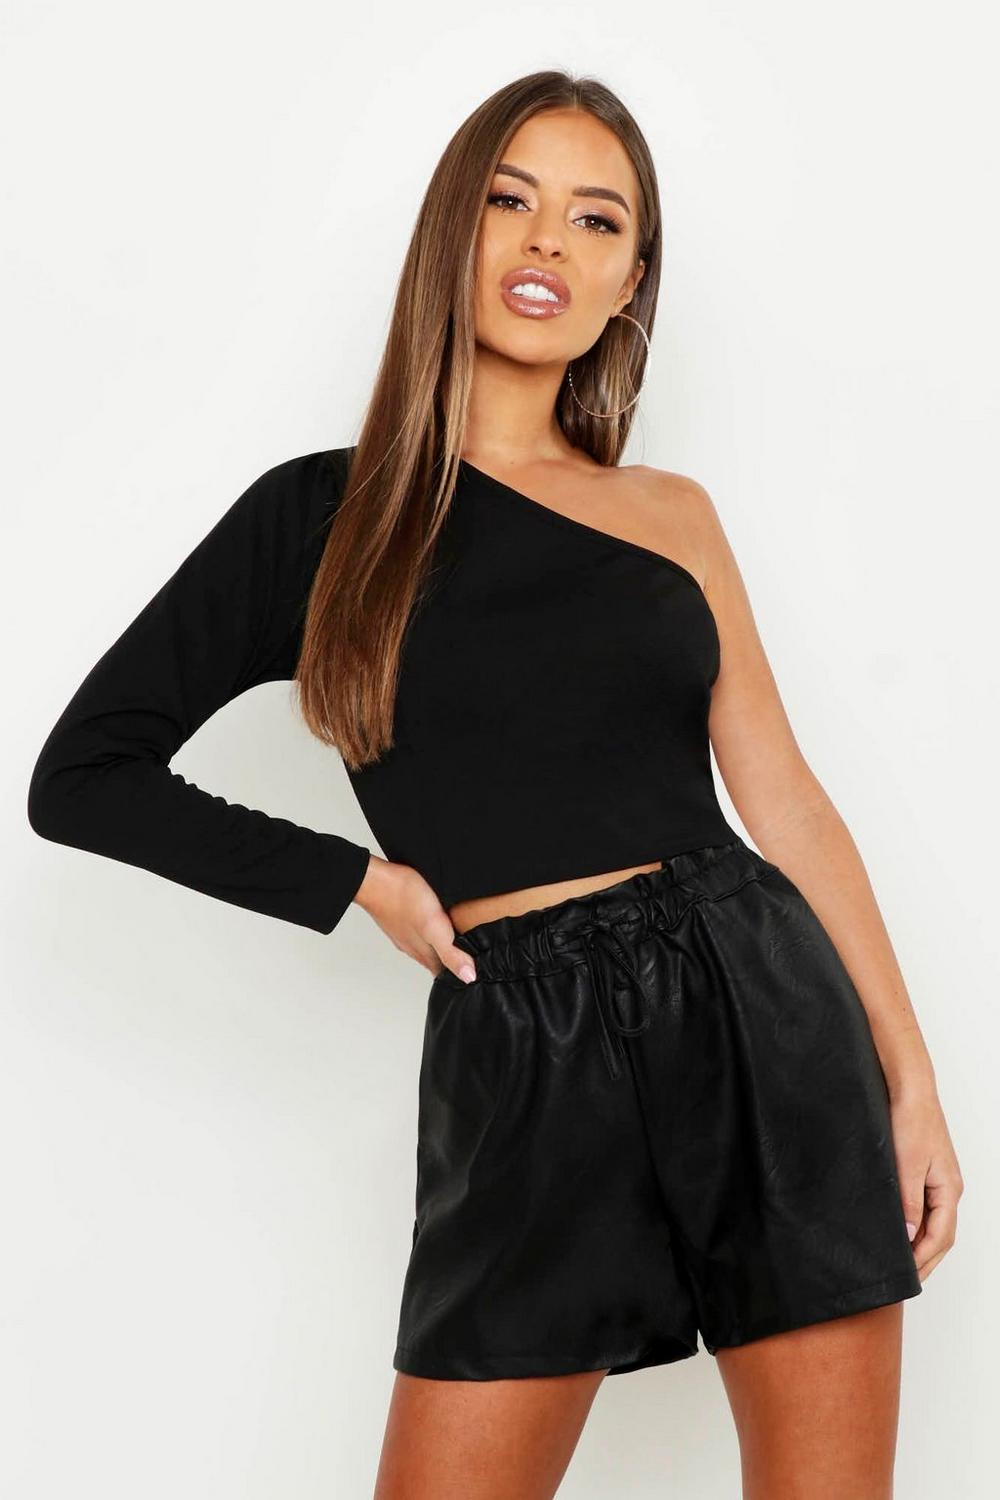 42c2e18651b Womens Black Petite One Shoulder Long Sleeve Crop Top. Hover to zoom